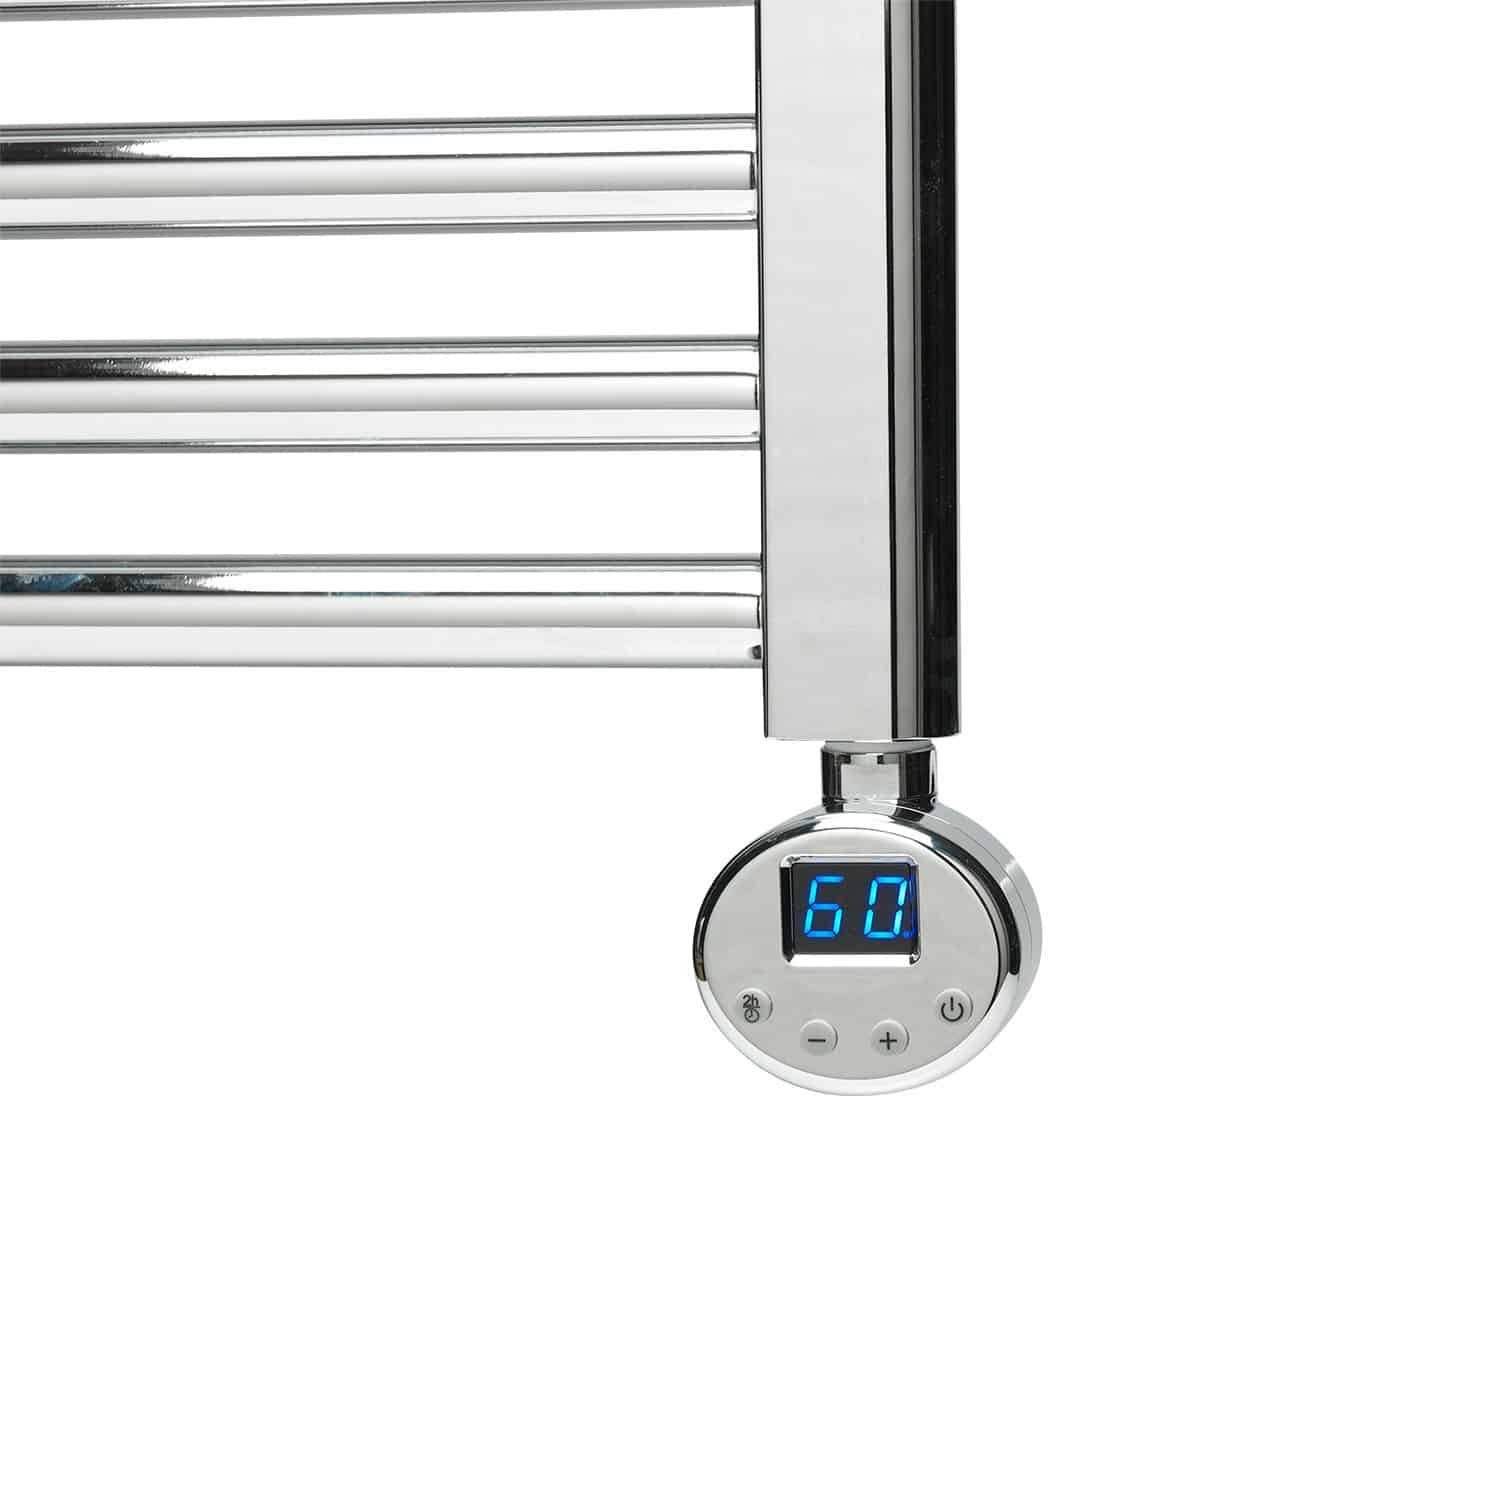 R2 Digital Thermostatic Electric Heating Element Timer For: * Clearance *R1 Thermostatic Electric Towel Rail Heating